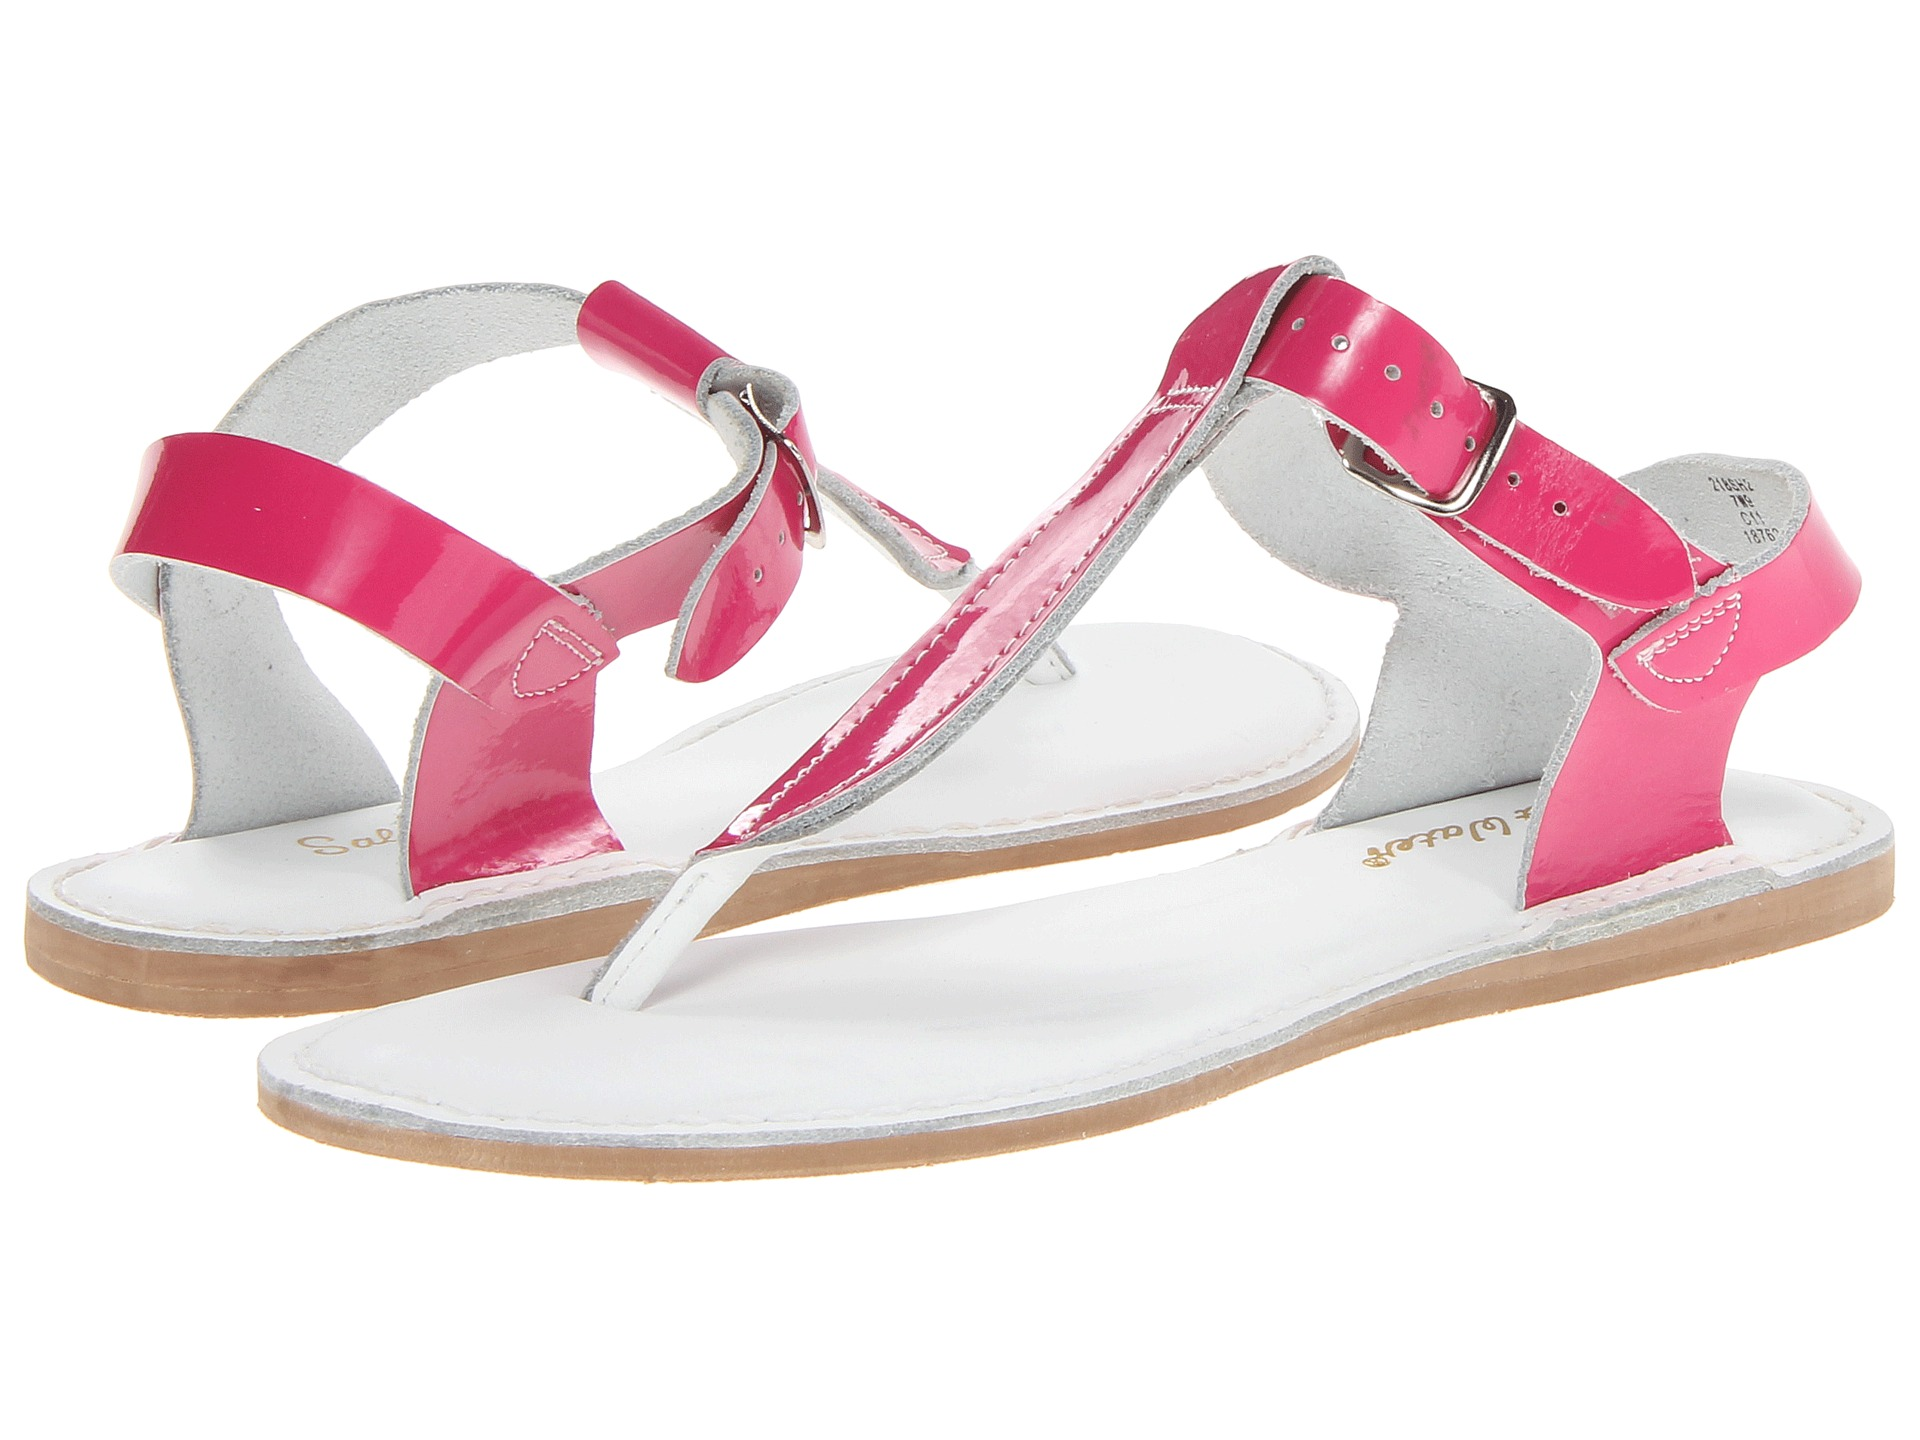 Salt Water Sandal By Hoy Shoes Sun San T Thongs Big Kid